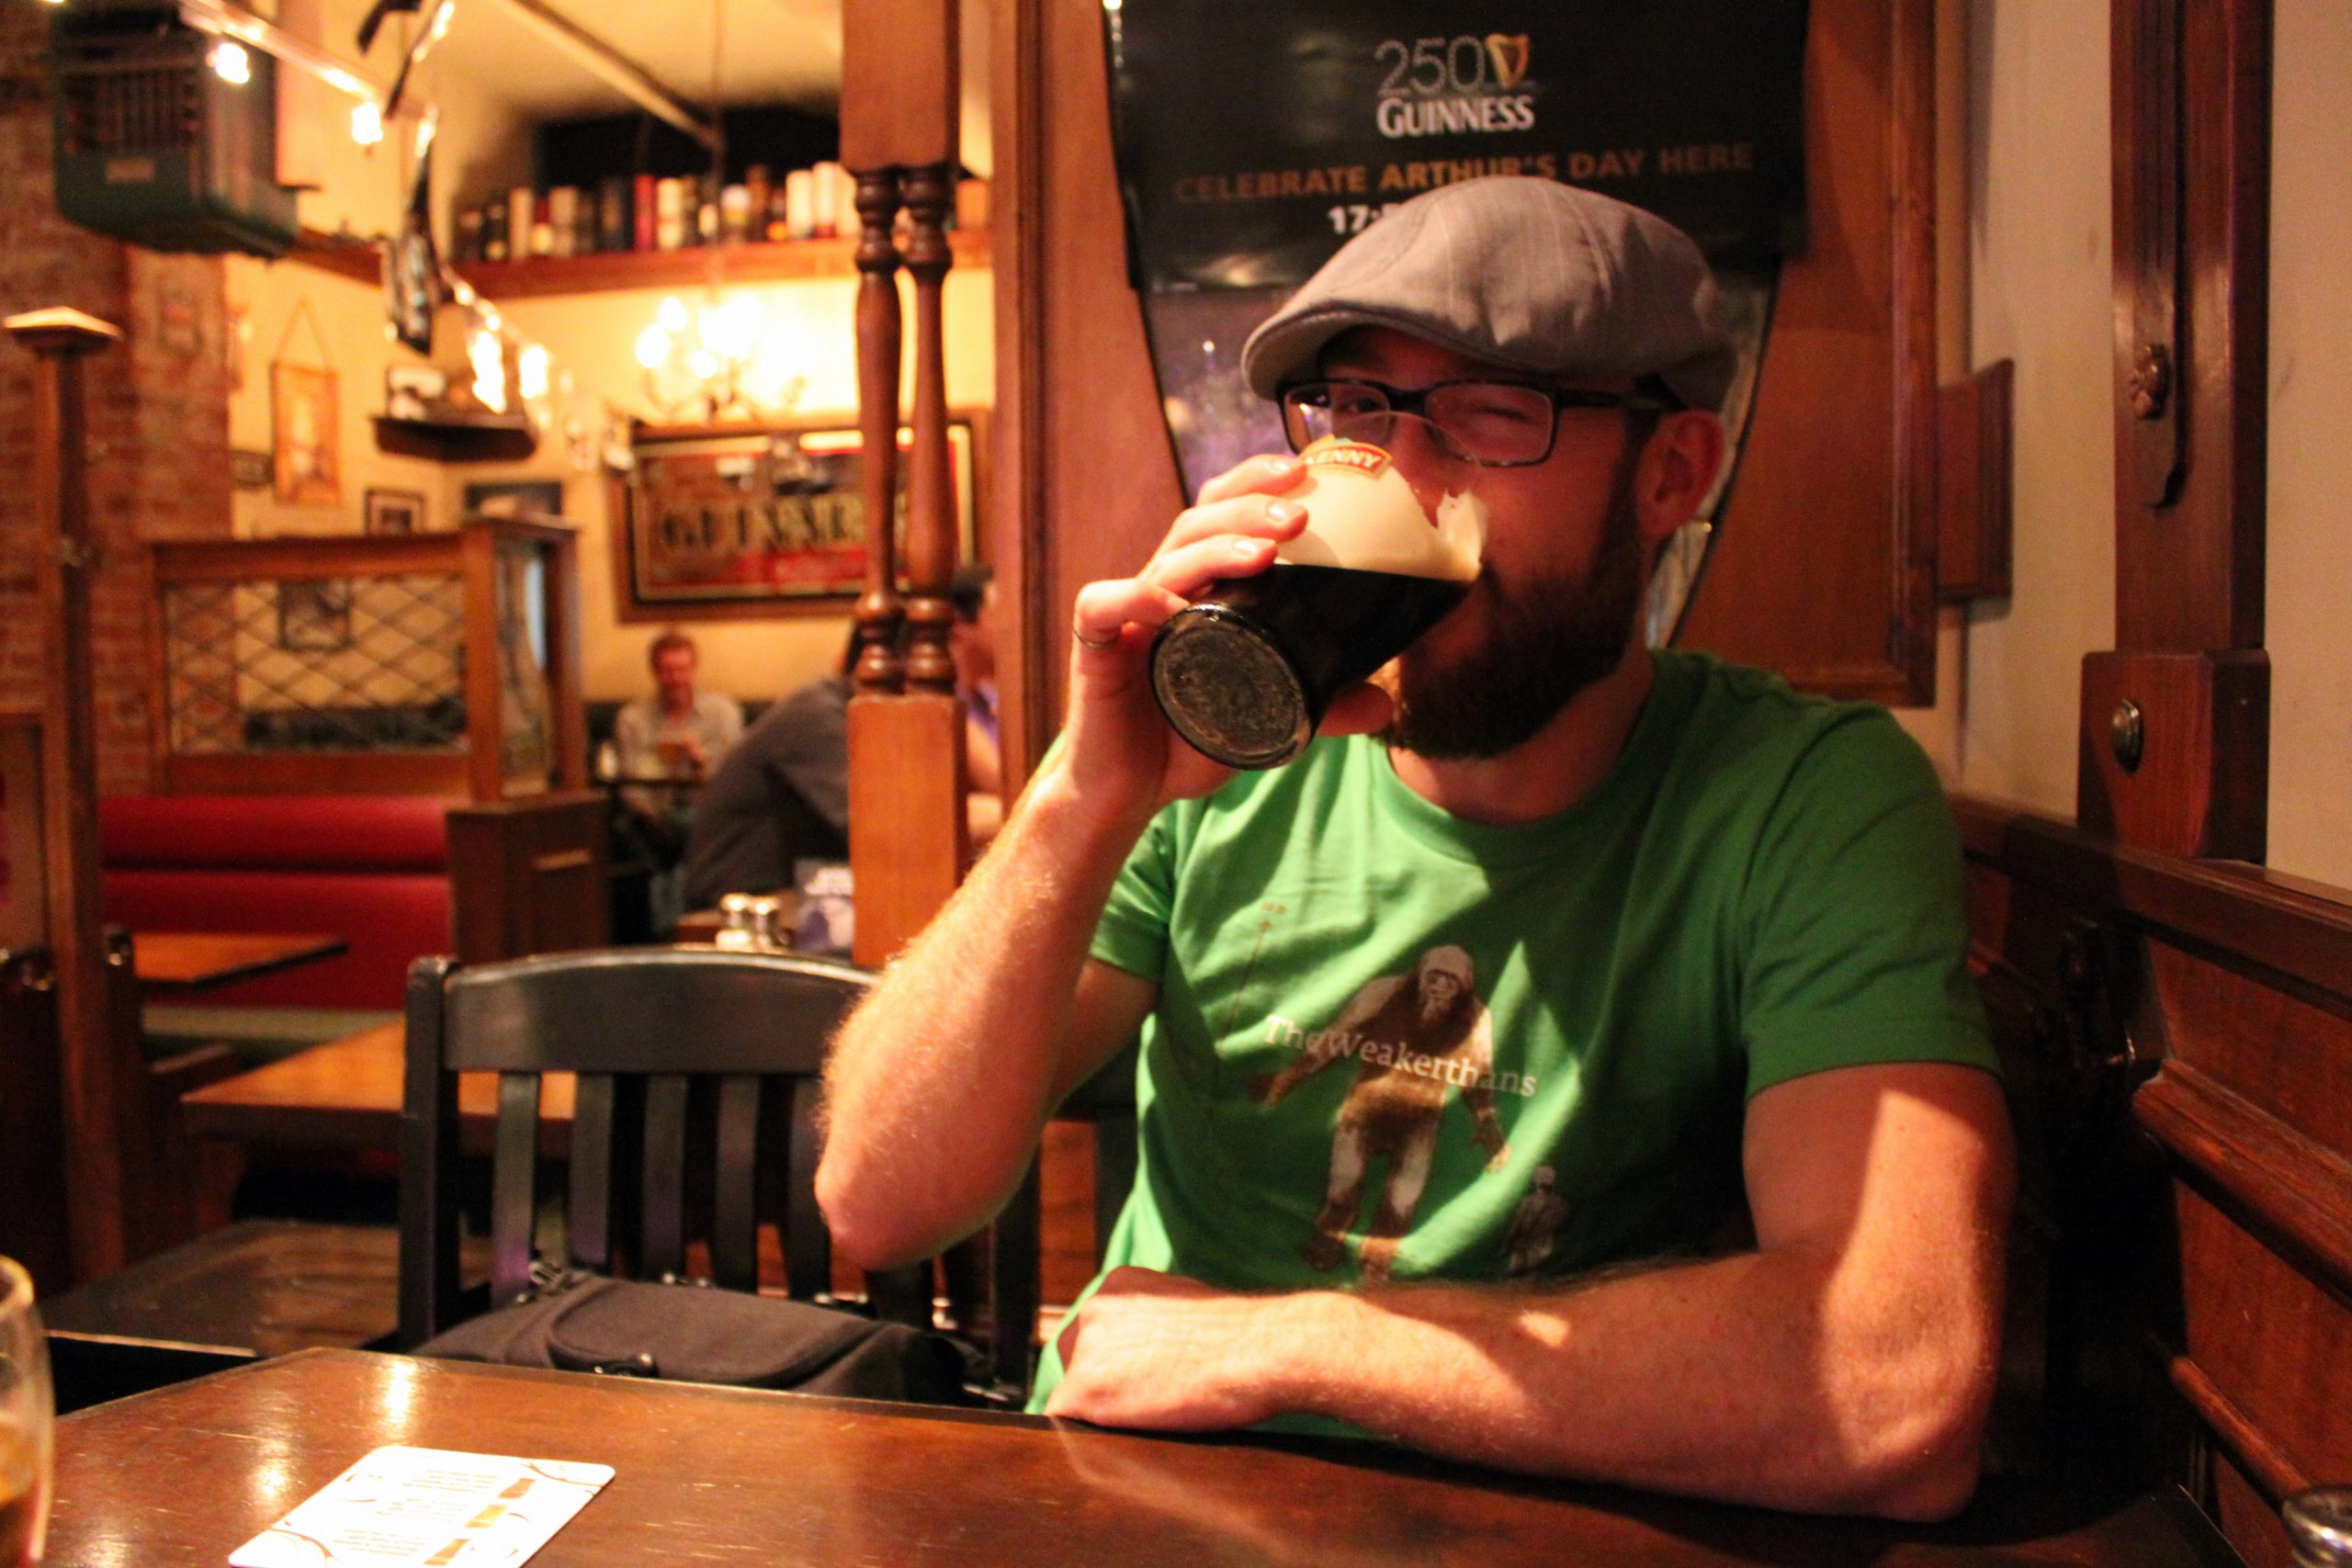 A guy in a irish pub! - RyAwesome - cc